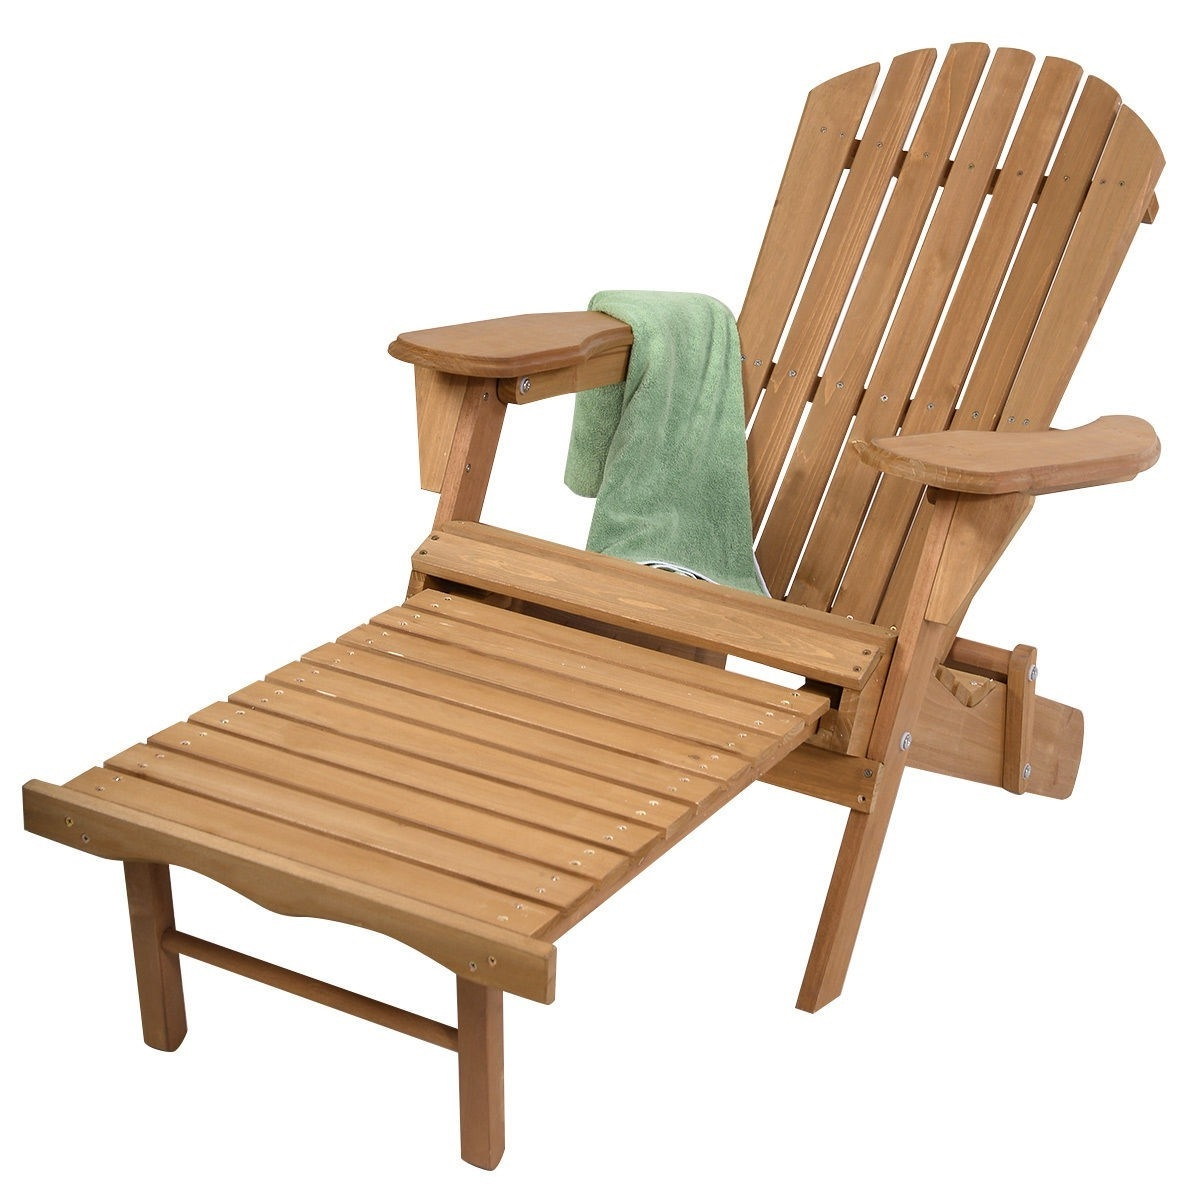 Prime Folding Wood Adirondack Chair With Pull Out Foot Rest Ottoman Cjindustries Chair Design For Home Cjindustriesco